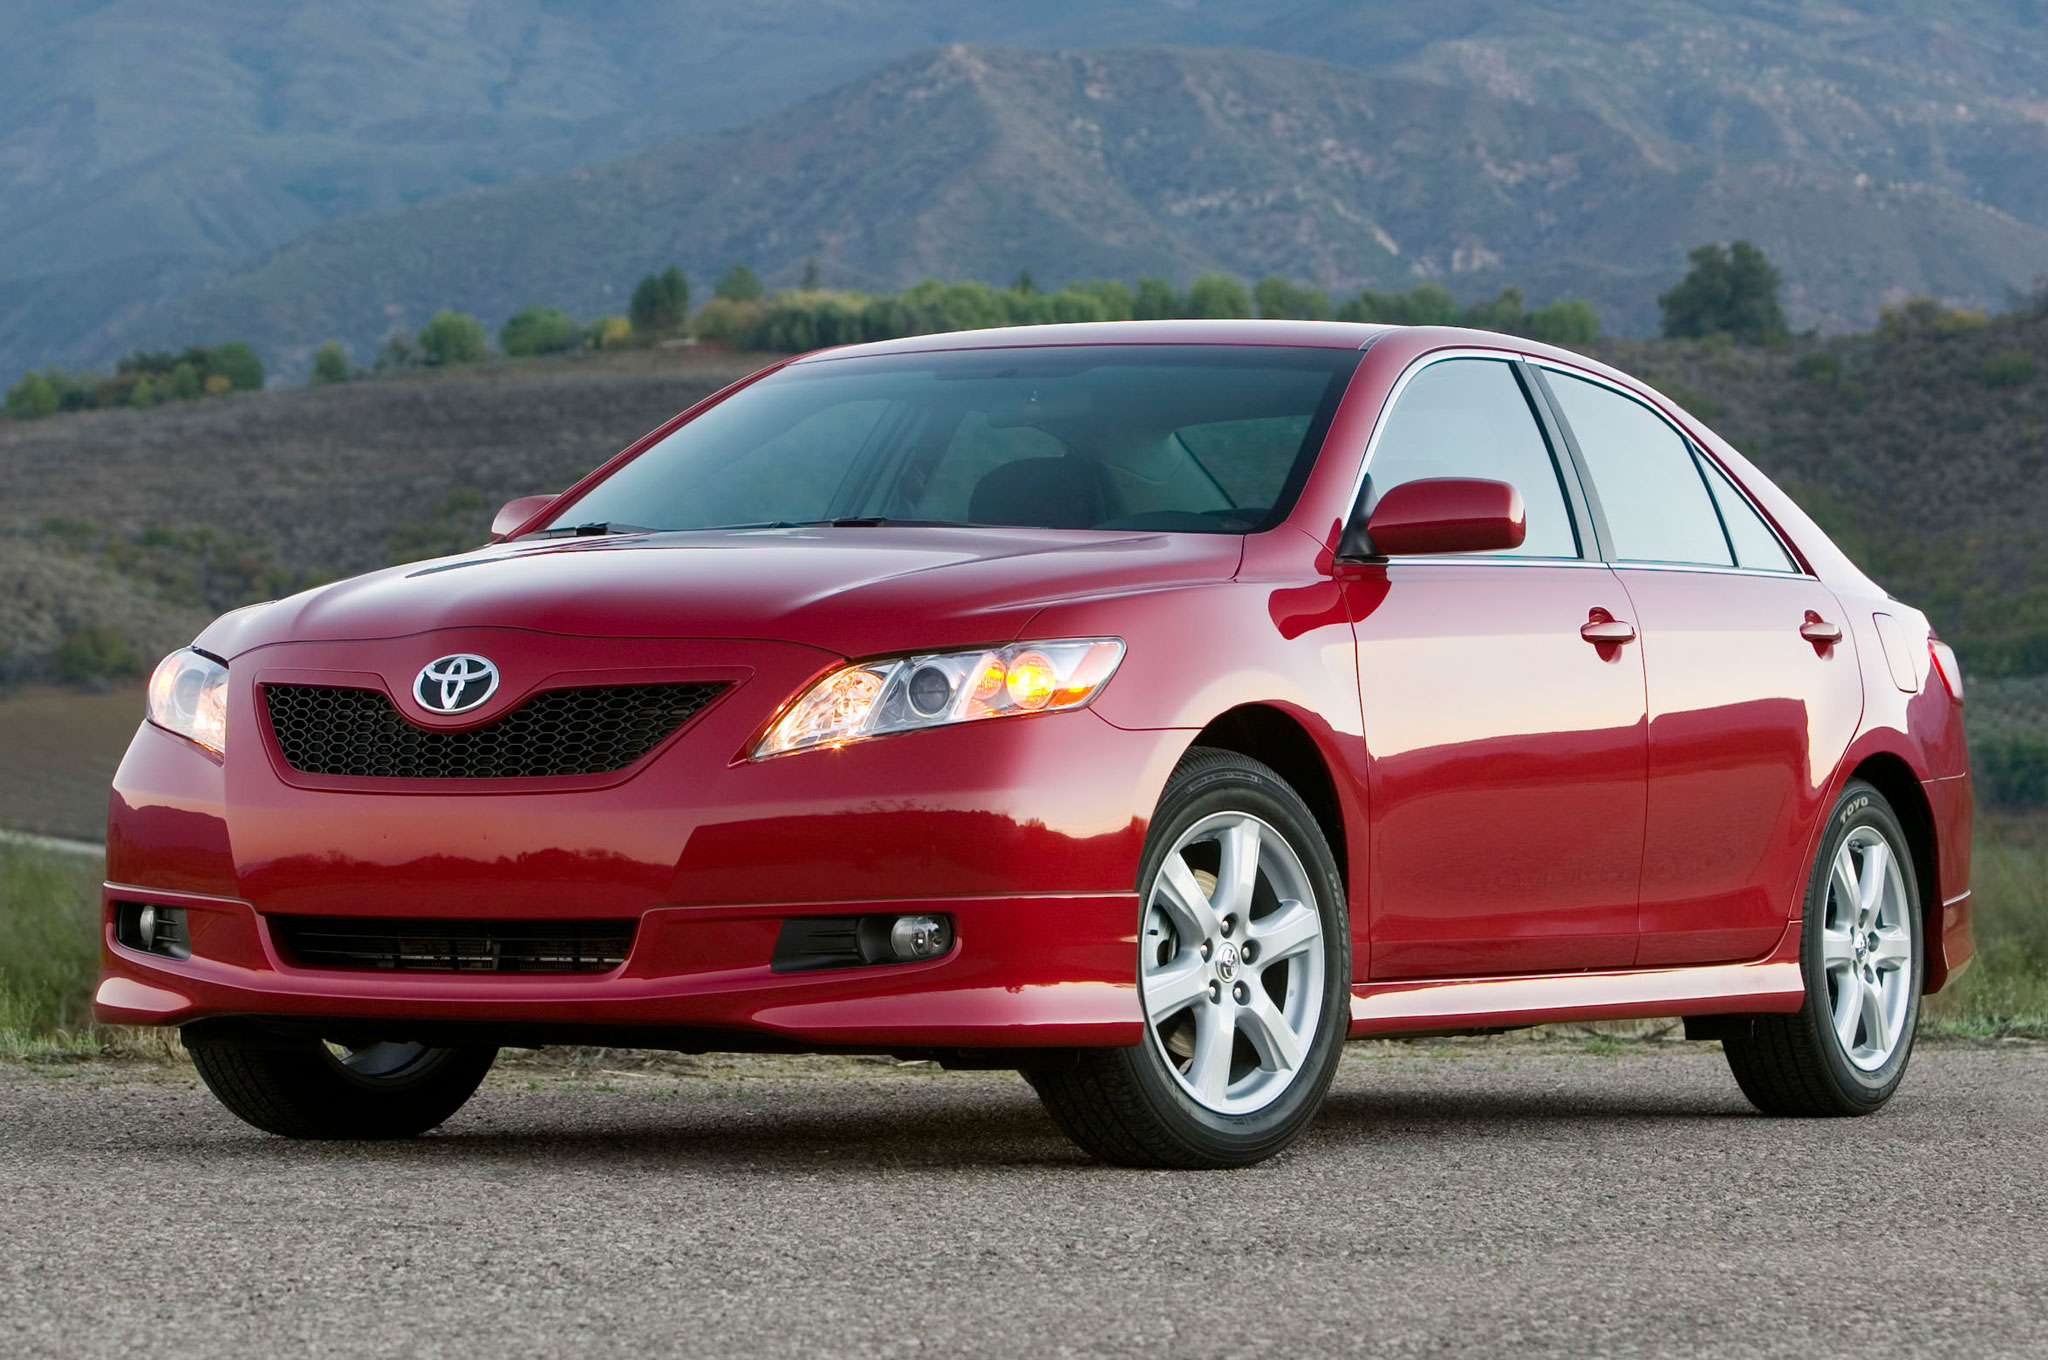 2007-Toyota-Camry-front-side-view